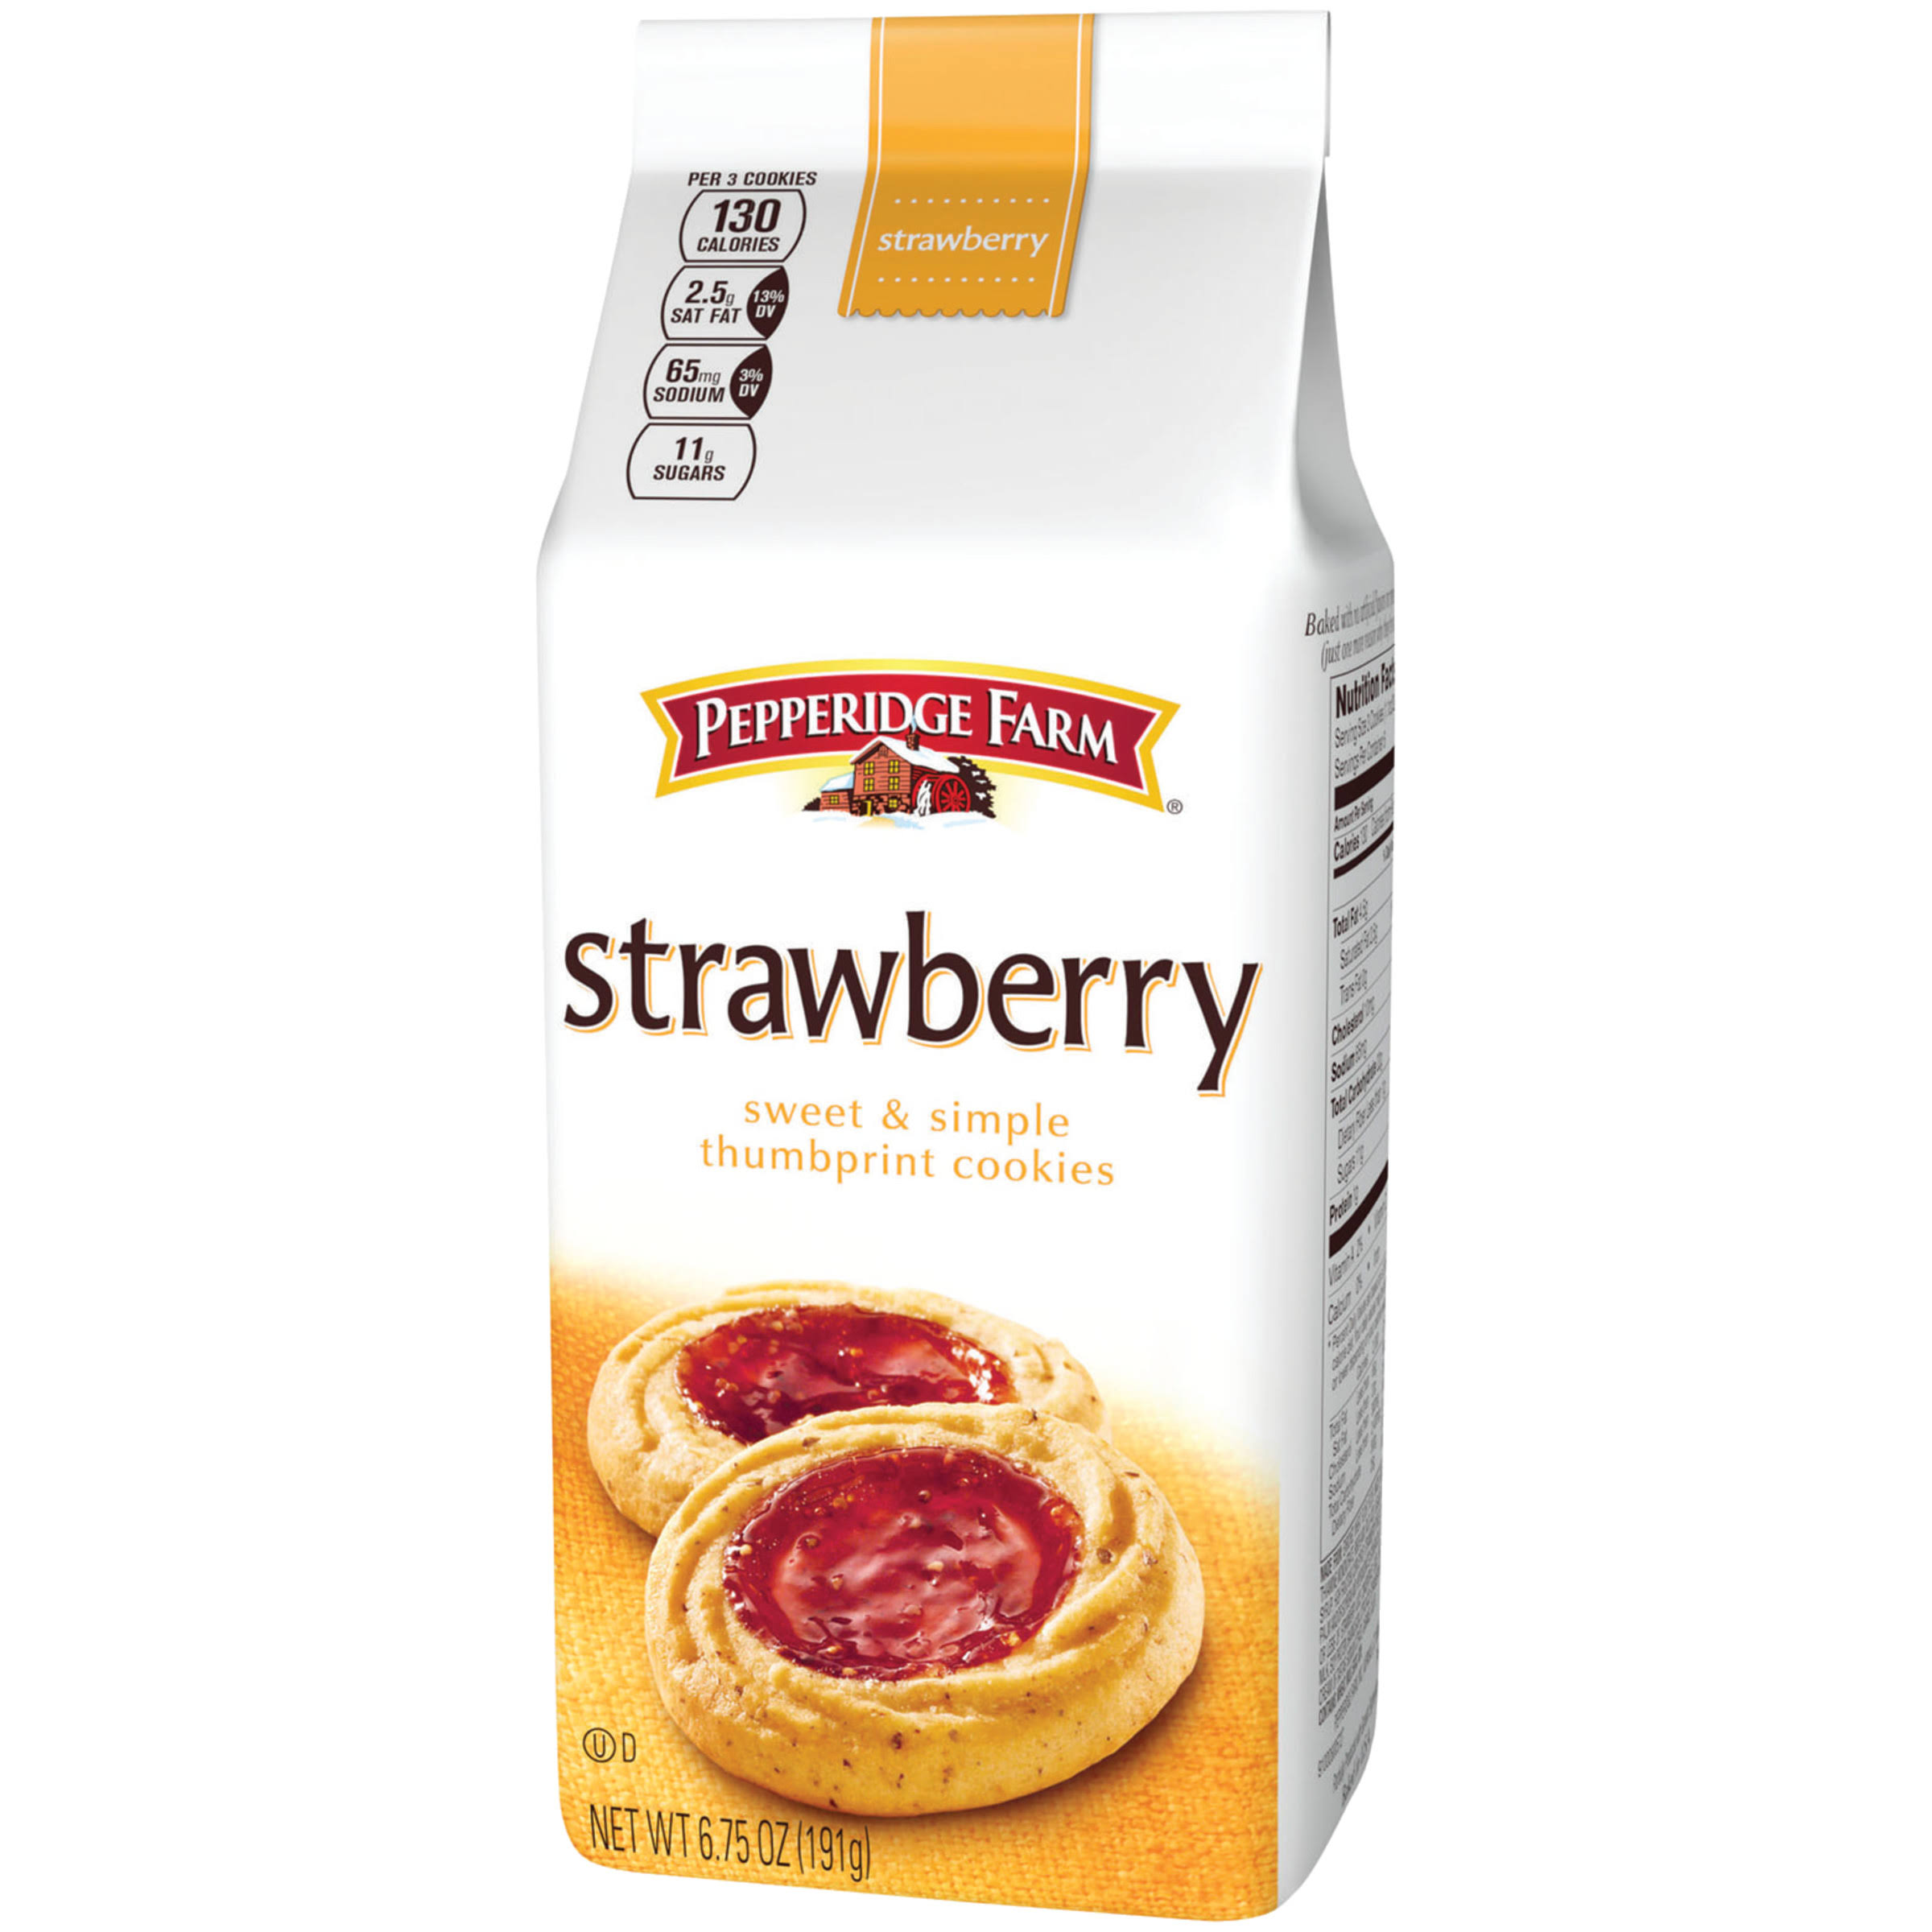 Pepperidge Farm Strawberry Cookies - 6.75oz